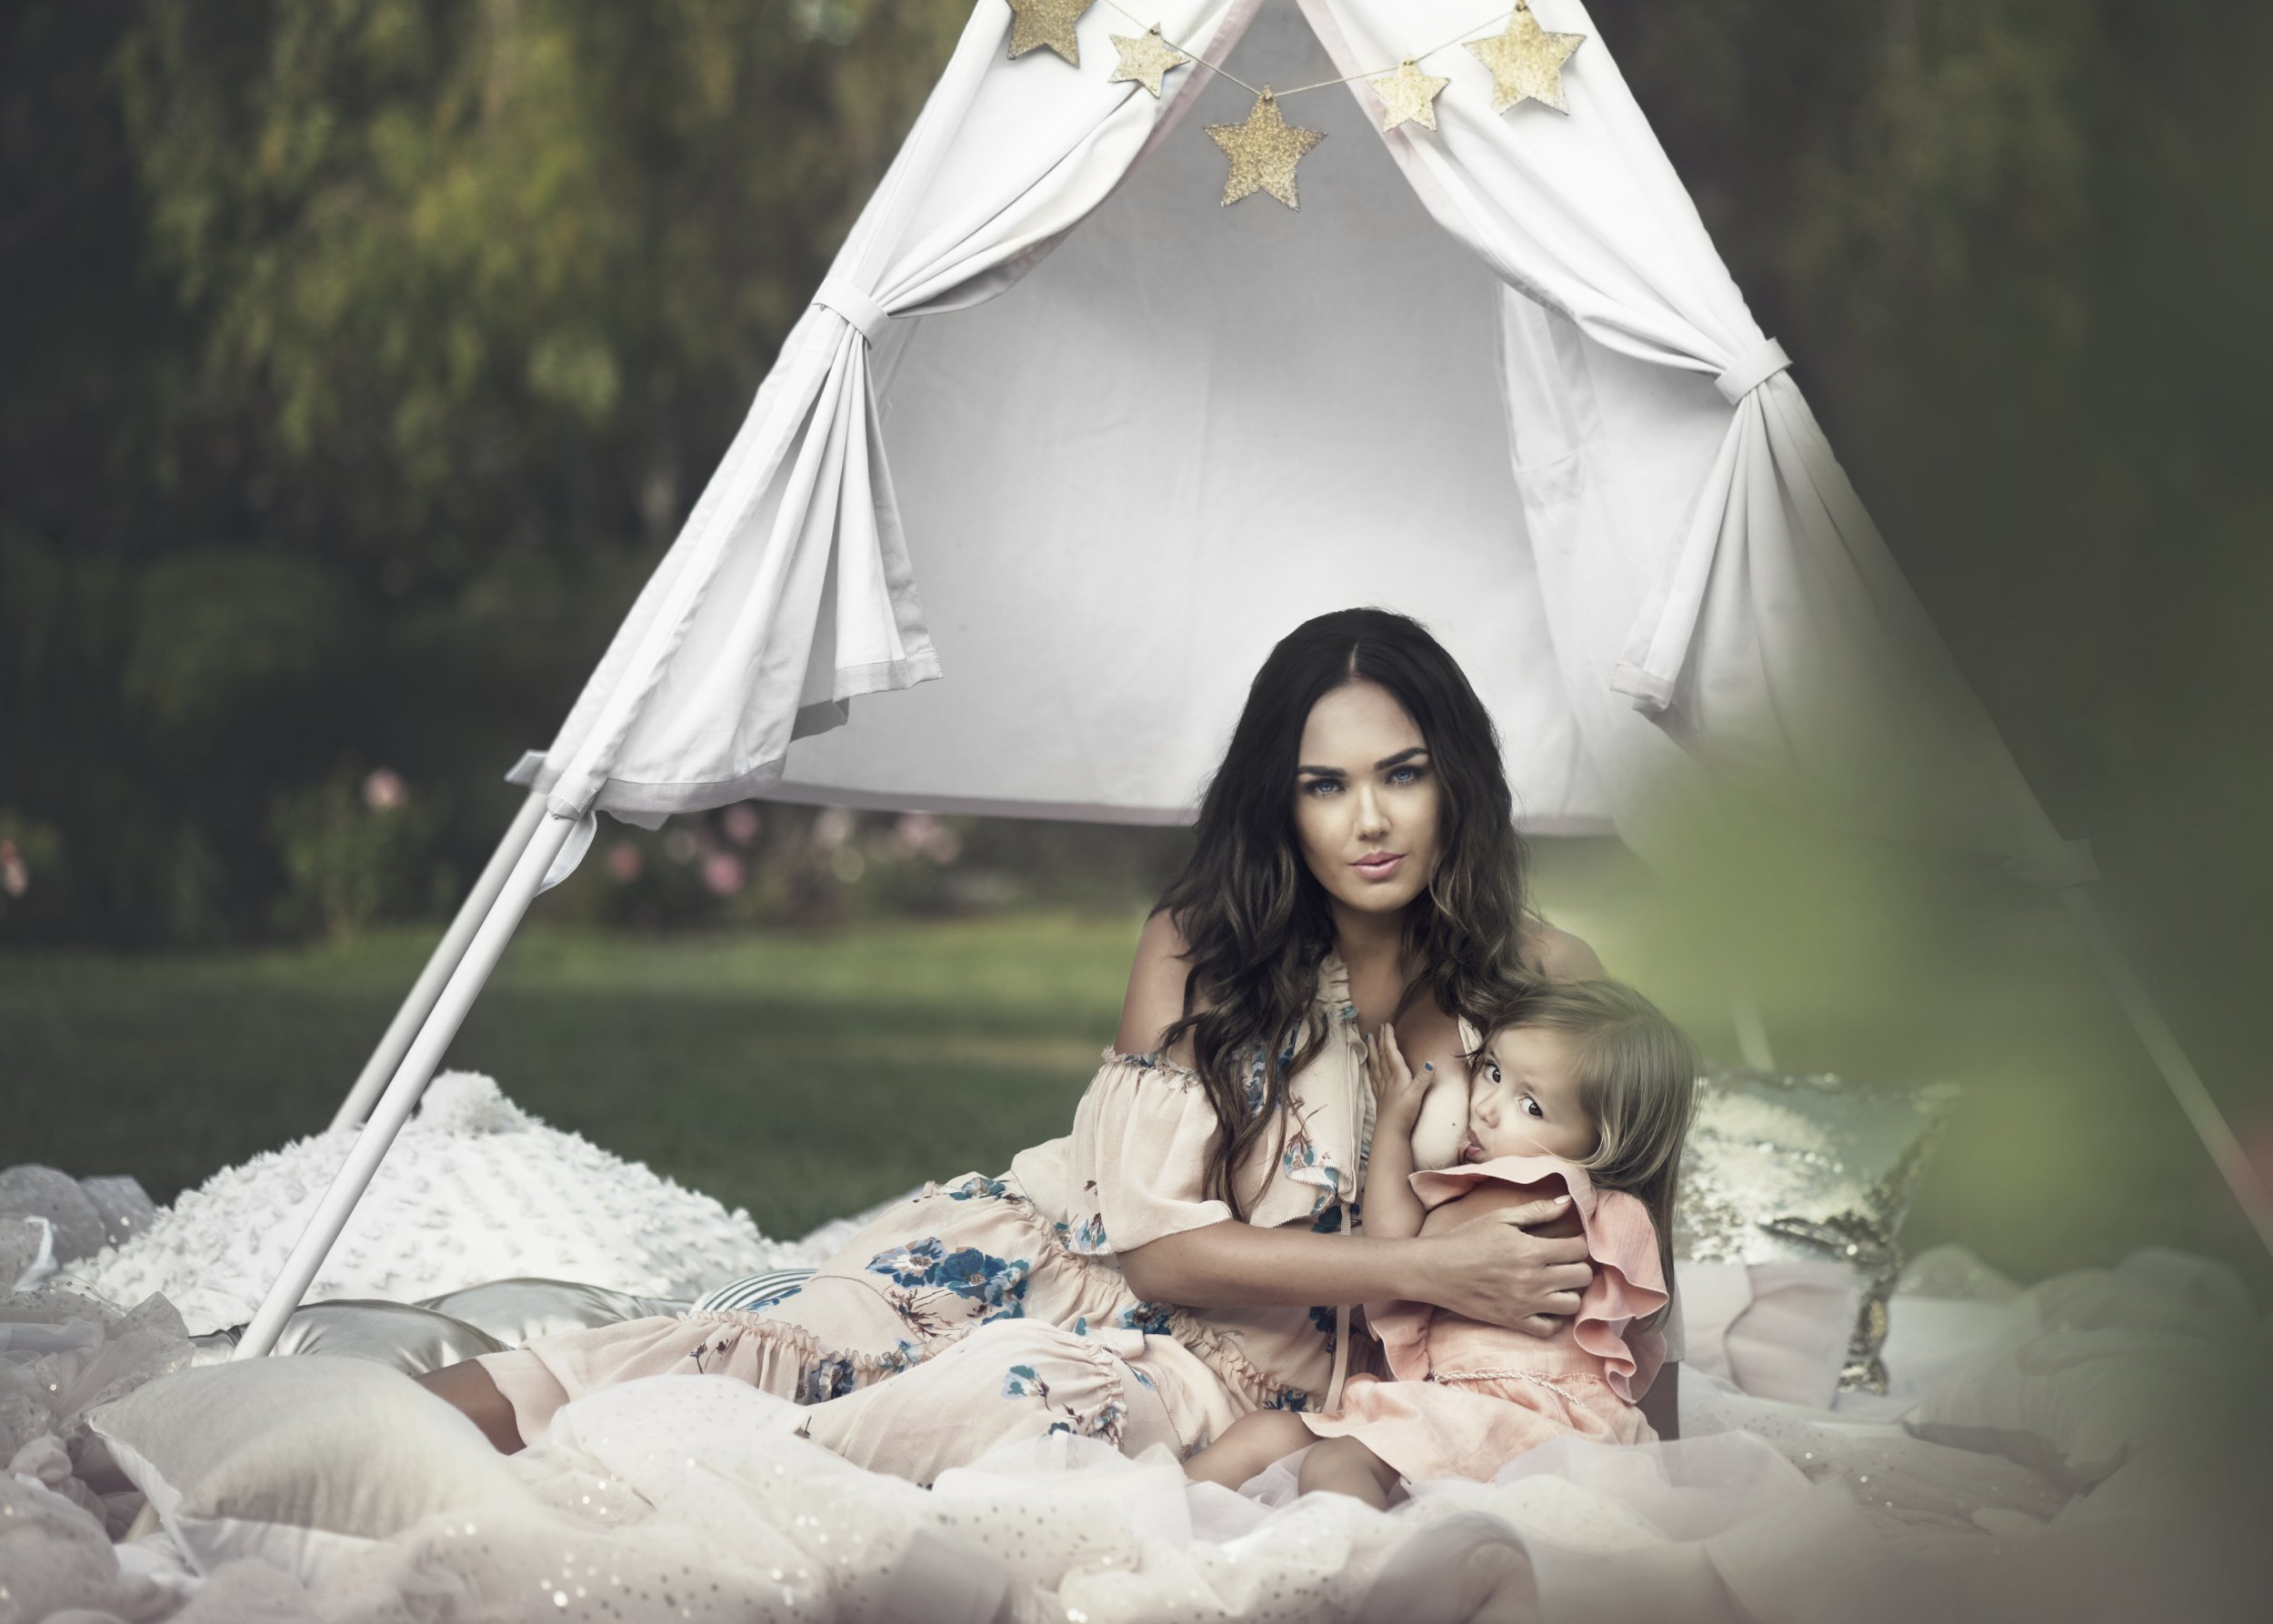 Tamara Ecclestone posts another photo of herself breast-feeding daughter Sophia and fans are divided